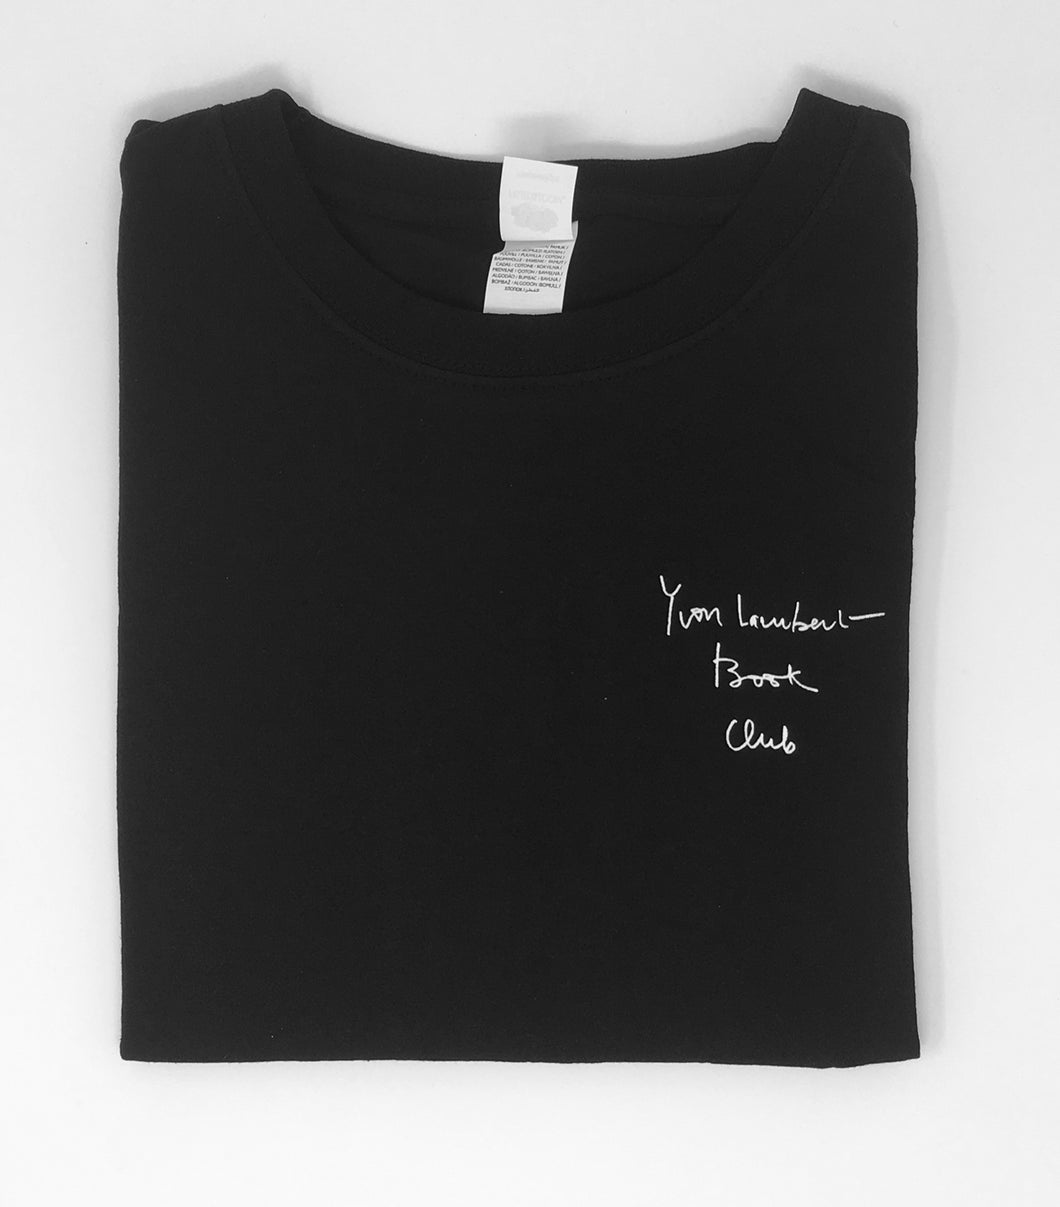 Yvon Lambert Book Club t-shirt (black)